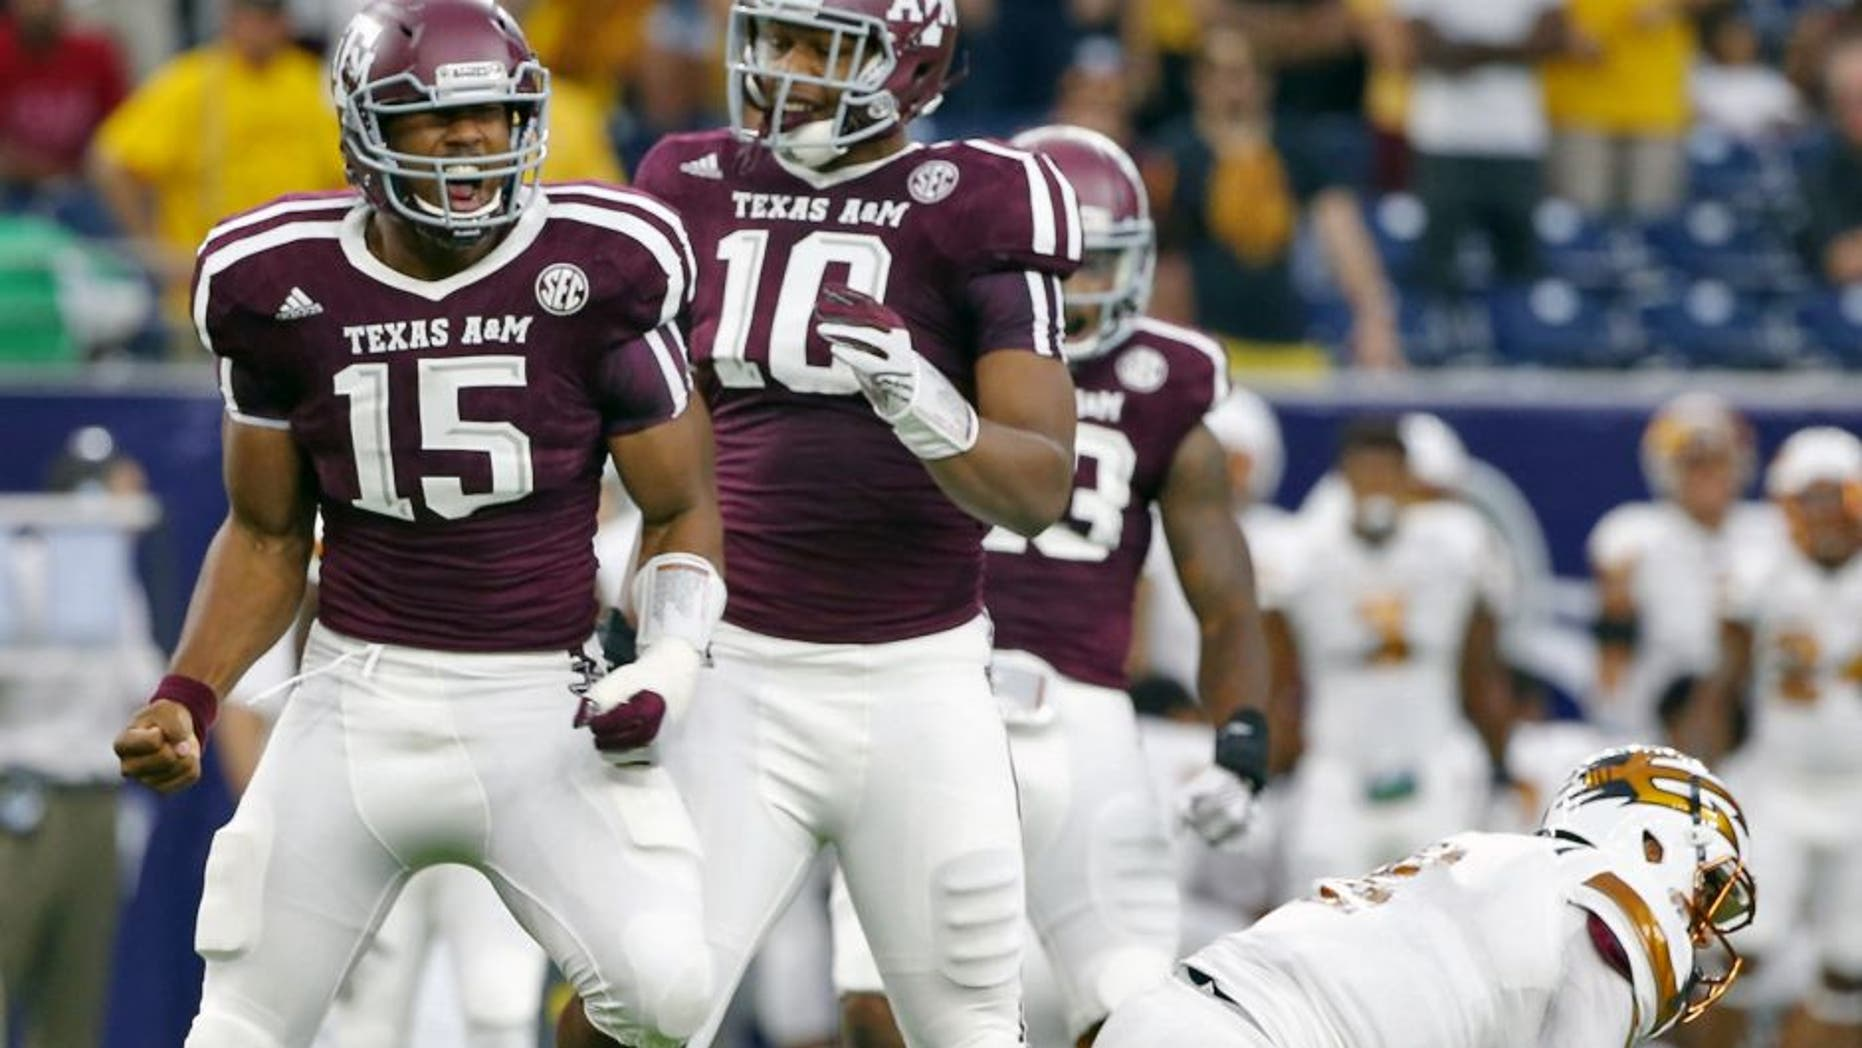 HOUSTON, TX - SEPTEMBER 05: Myles Garrett #15 of the Texas A&M Aggies celebrates after his sack of Mike Bercovici #2 of the Arizona State Sun Devils during the first half of their game during the Advocare Texas Kickoff at NRG Stadium on September 5, 2015 in Houston, Texas. (Photo by Scott Halleran/Getty Images)